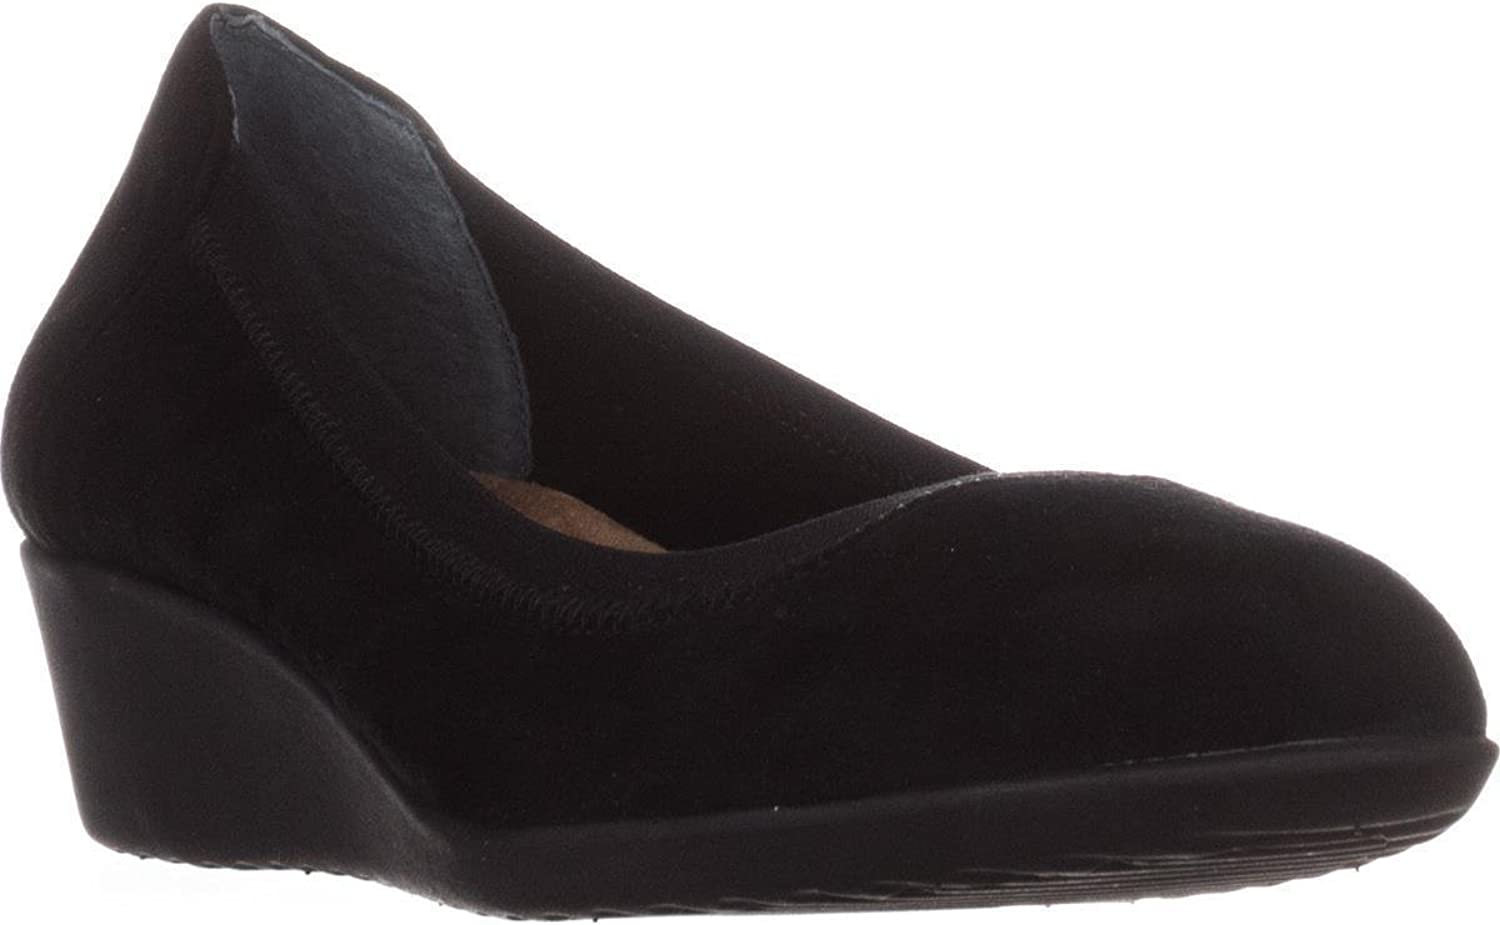 Giani Bernini Womens Seanuh Closed Toe Wedge Pumps